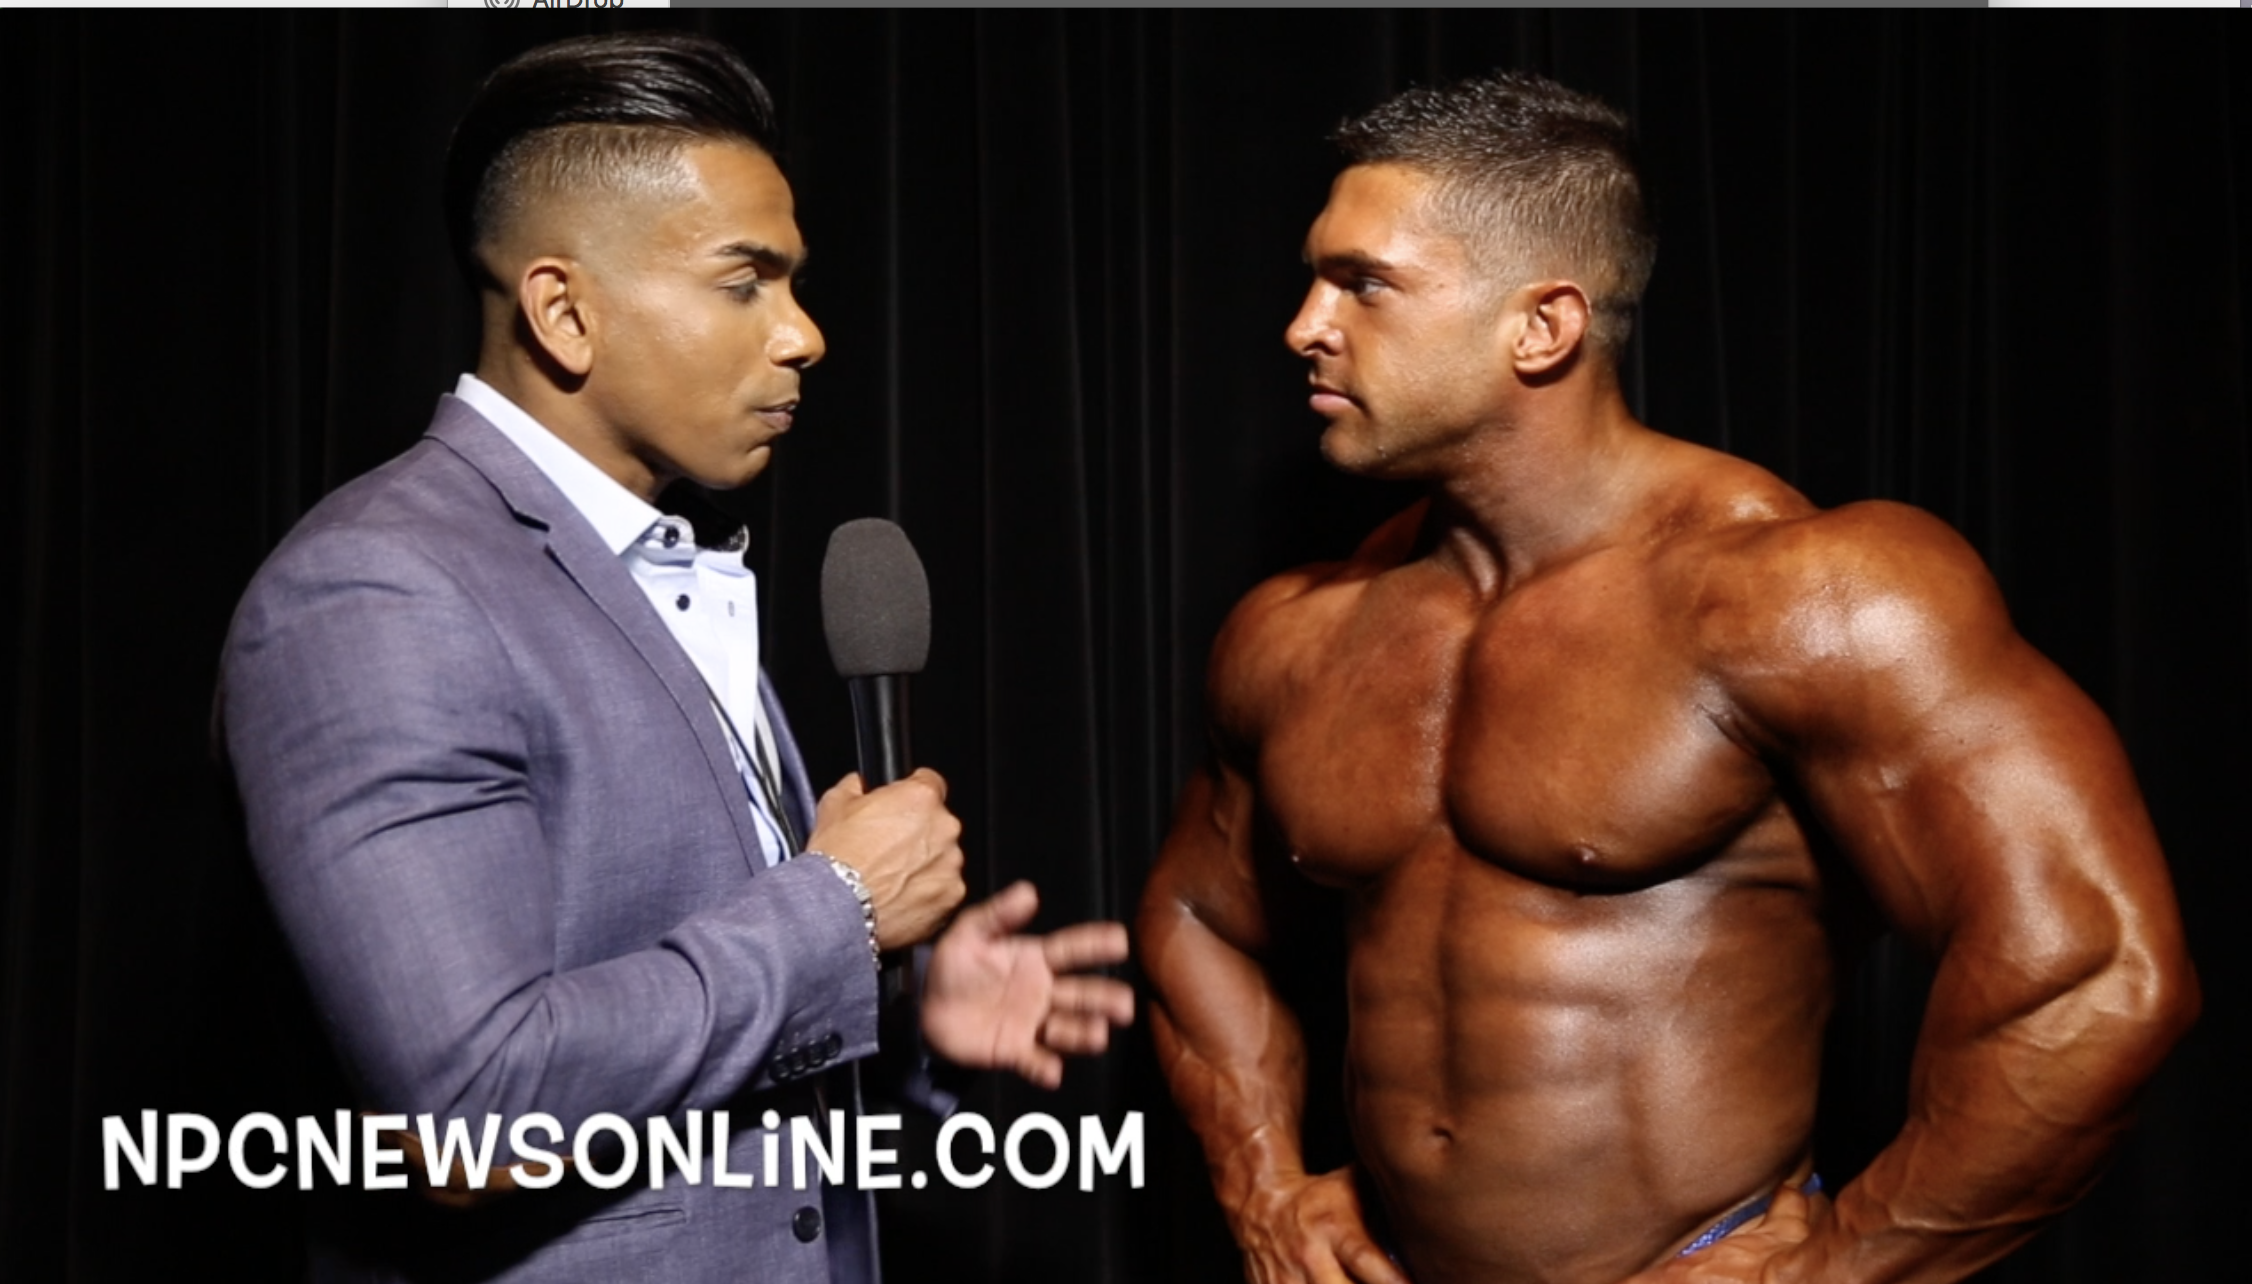 2017 NPC USA Bodybuilding Overall Winner Derek Lunsford Interviewed By IFBB Pro Freddy Mac